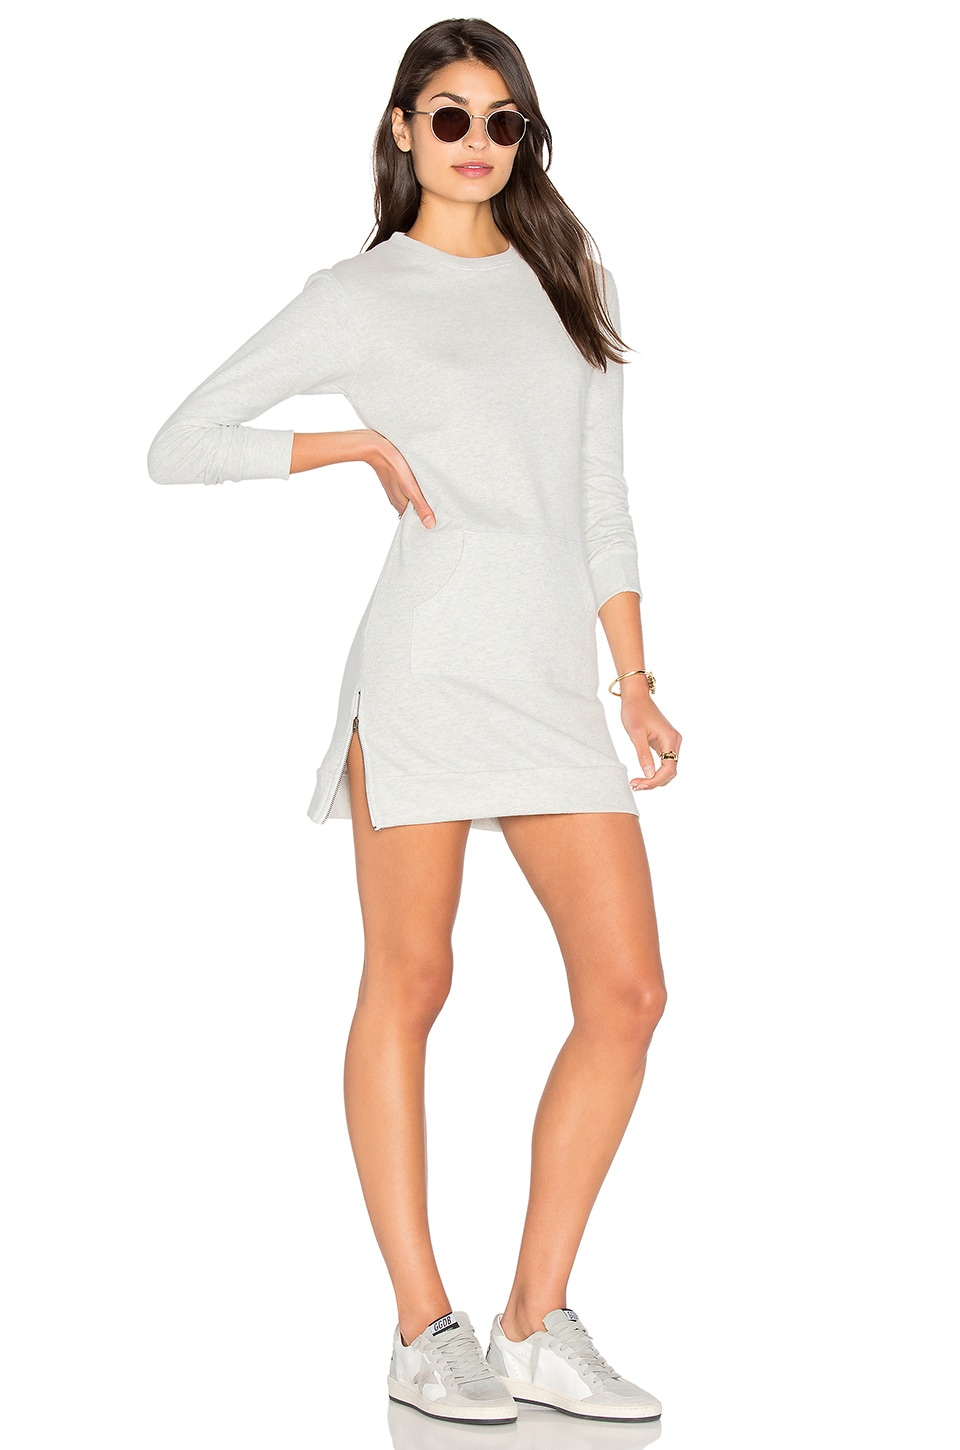 C&C California Marlow Sweatshirt Dress in Pale Heather Grey